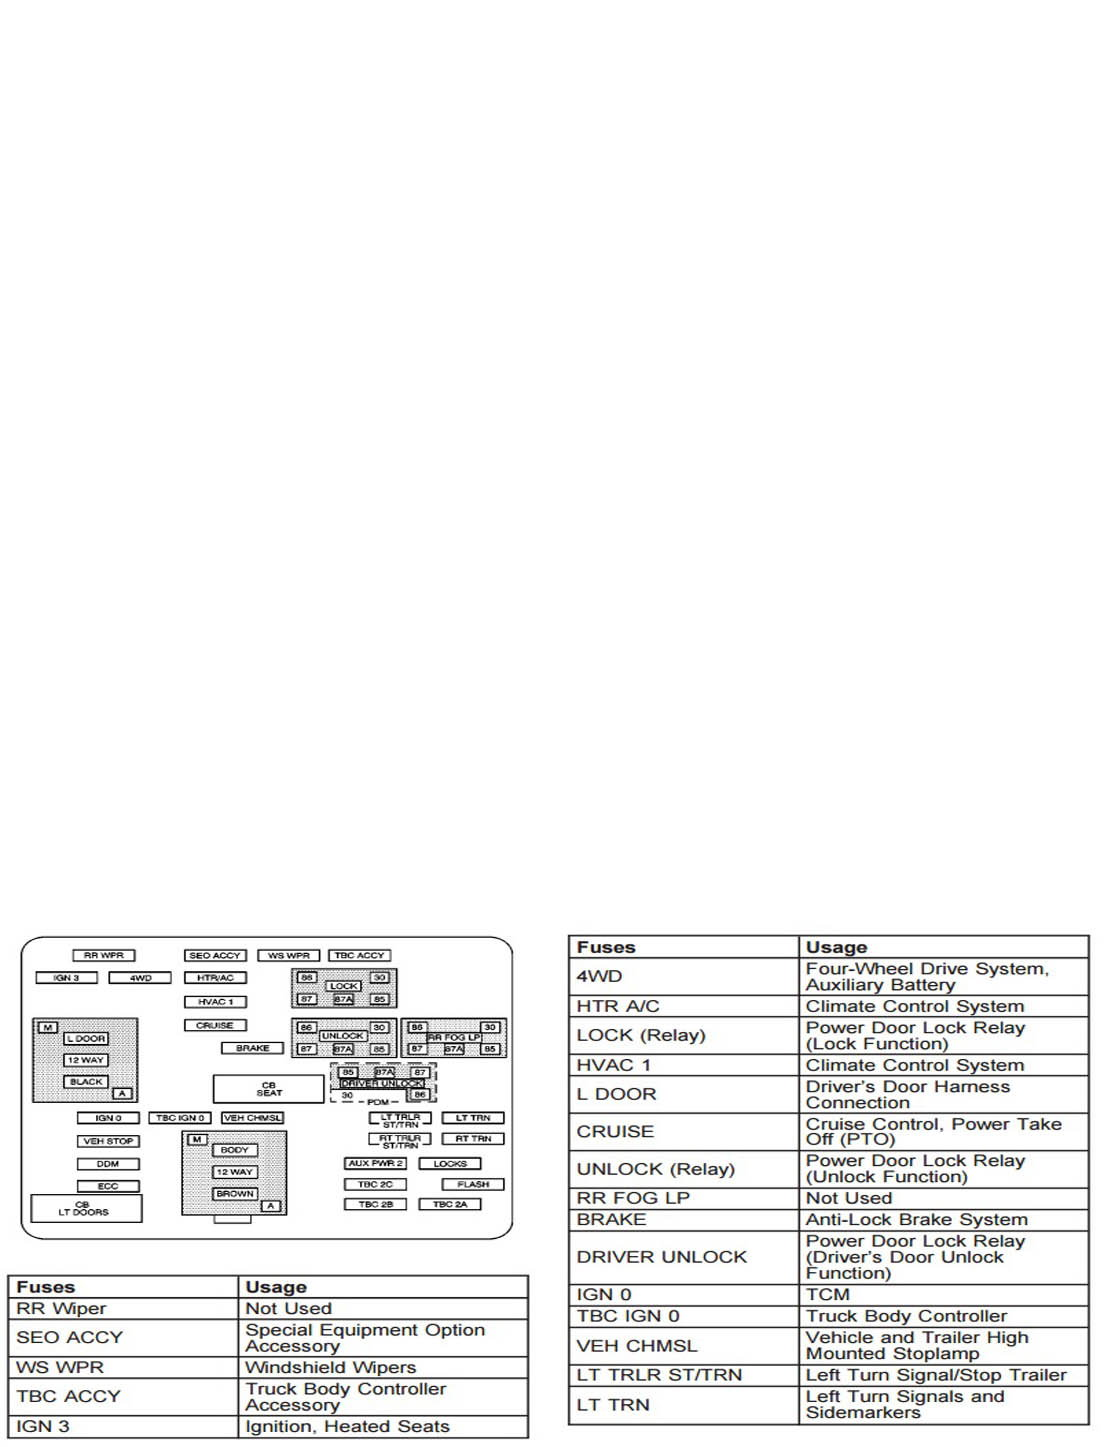 2006 Chevy Express Van Fuse Box : Chevrolet silverado gmt  fuse box diagram